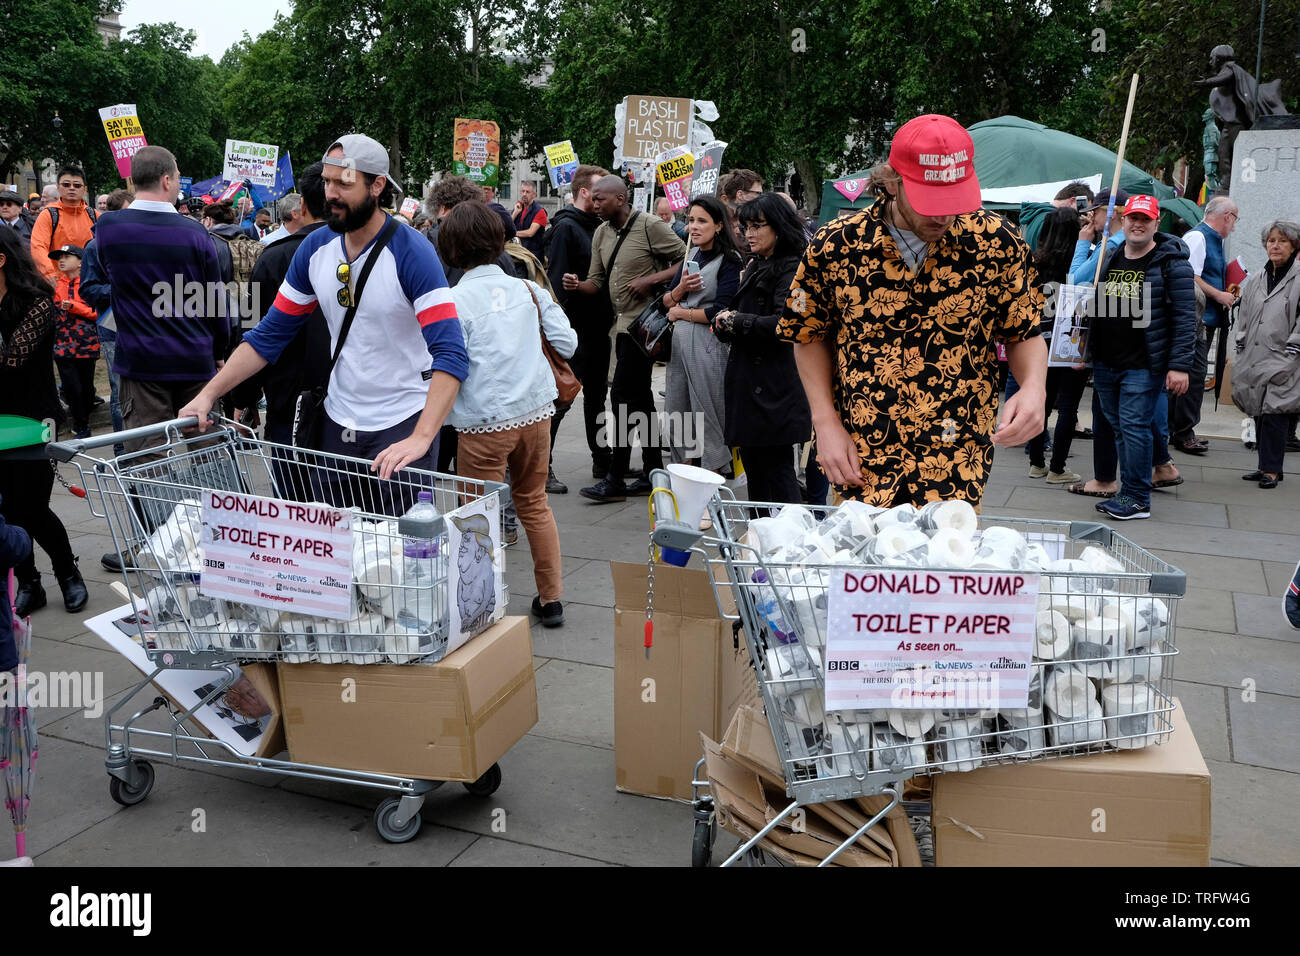 Two men selling Donald Trump toilet paper in Parliament Square, at a protest against the president of the Unted States, during his visit to UK. - Stock Image